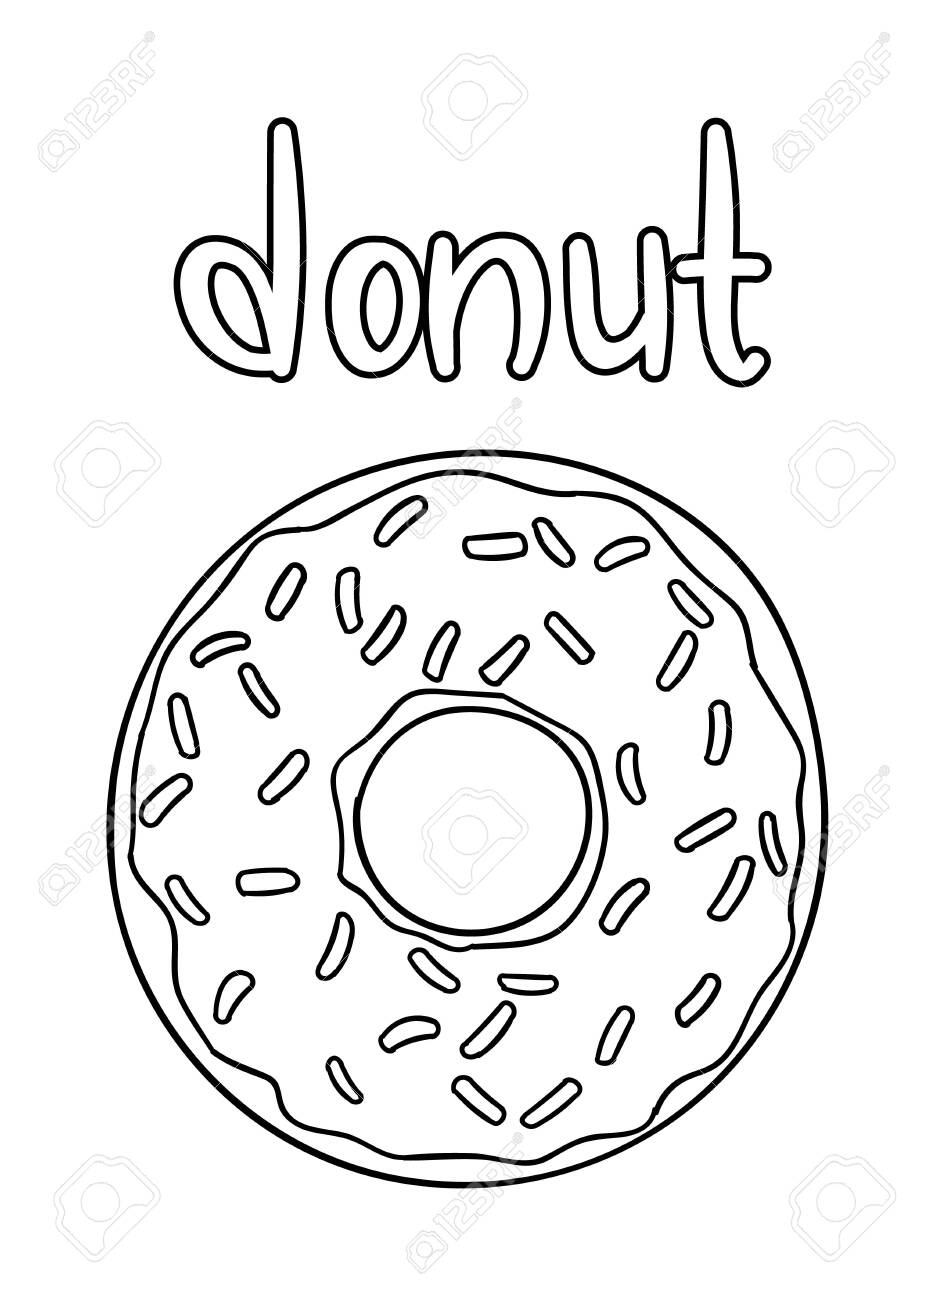 Coloring Pages Black And White Cute Hand Drawn Donut Doodles Royalty Free Cliparts Vectors And Stock Illustration Image 142344968